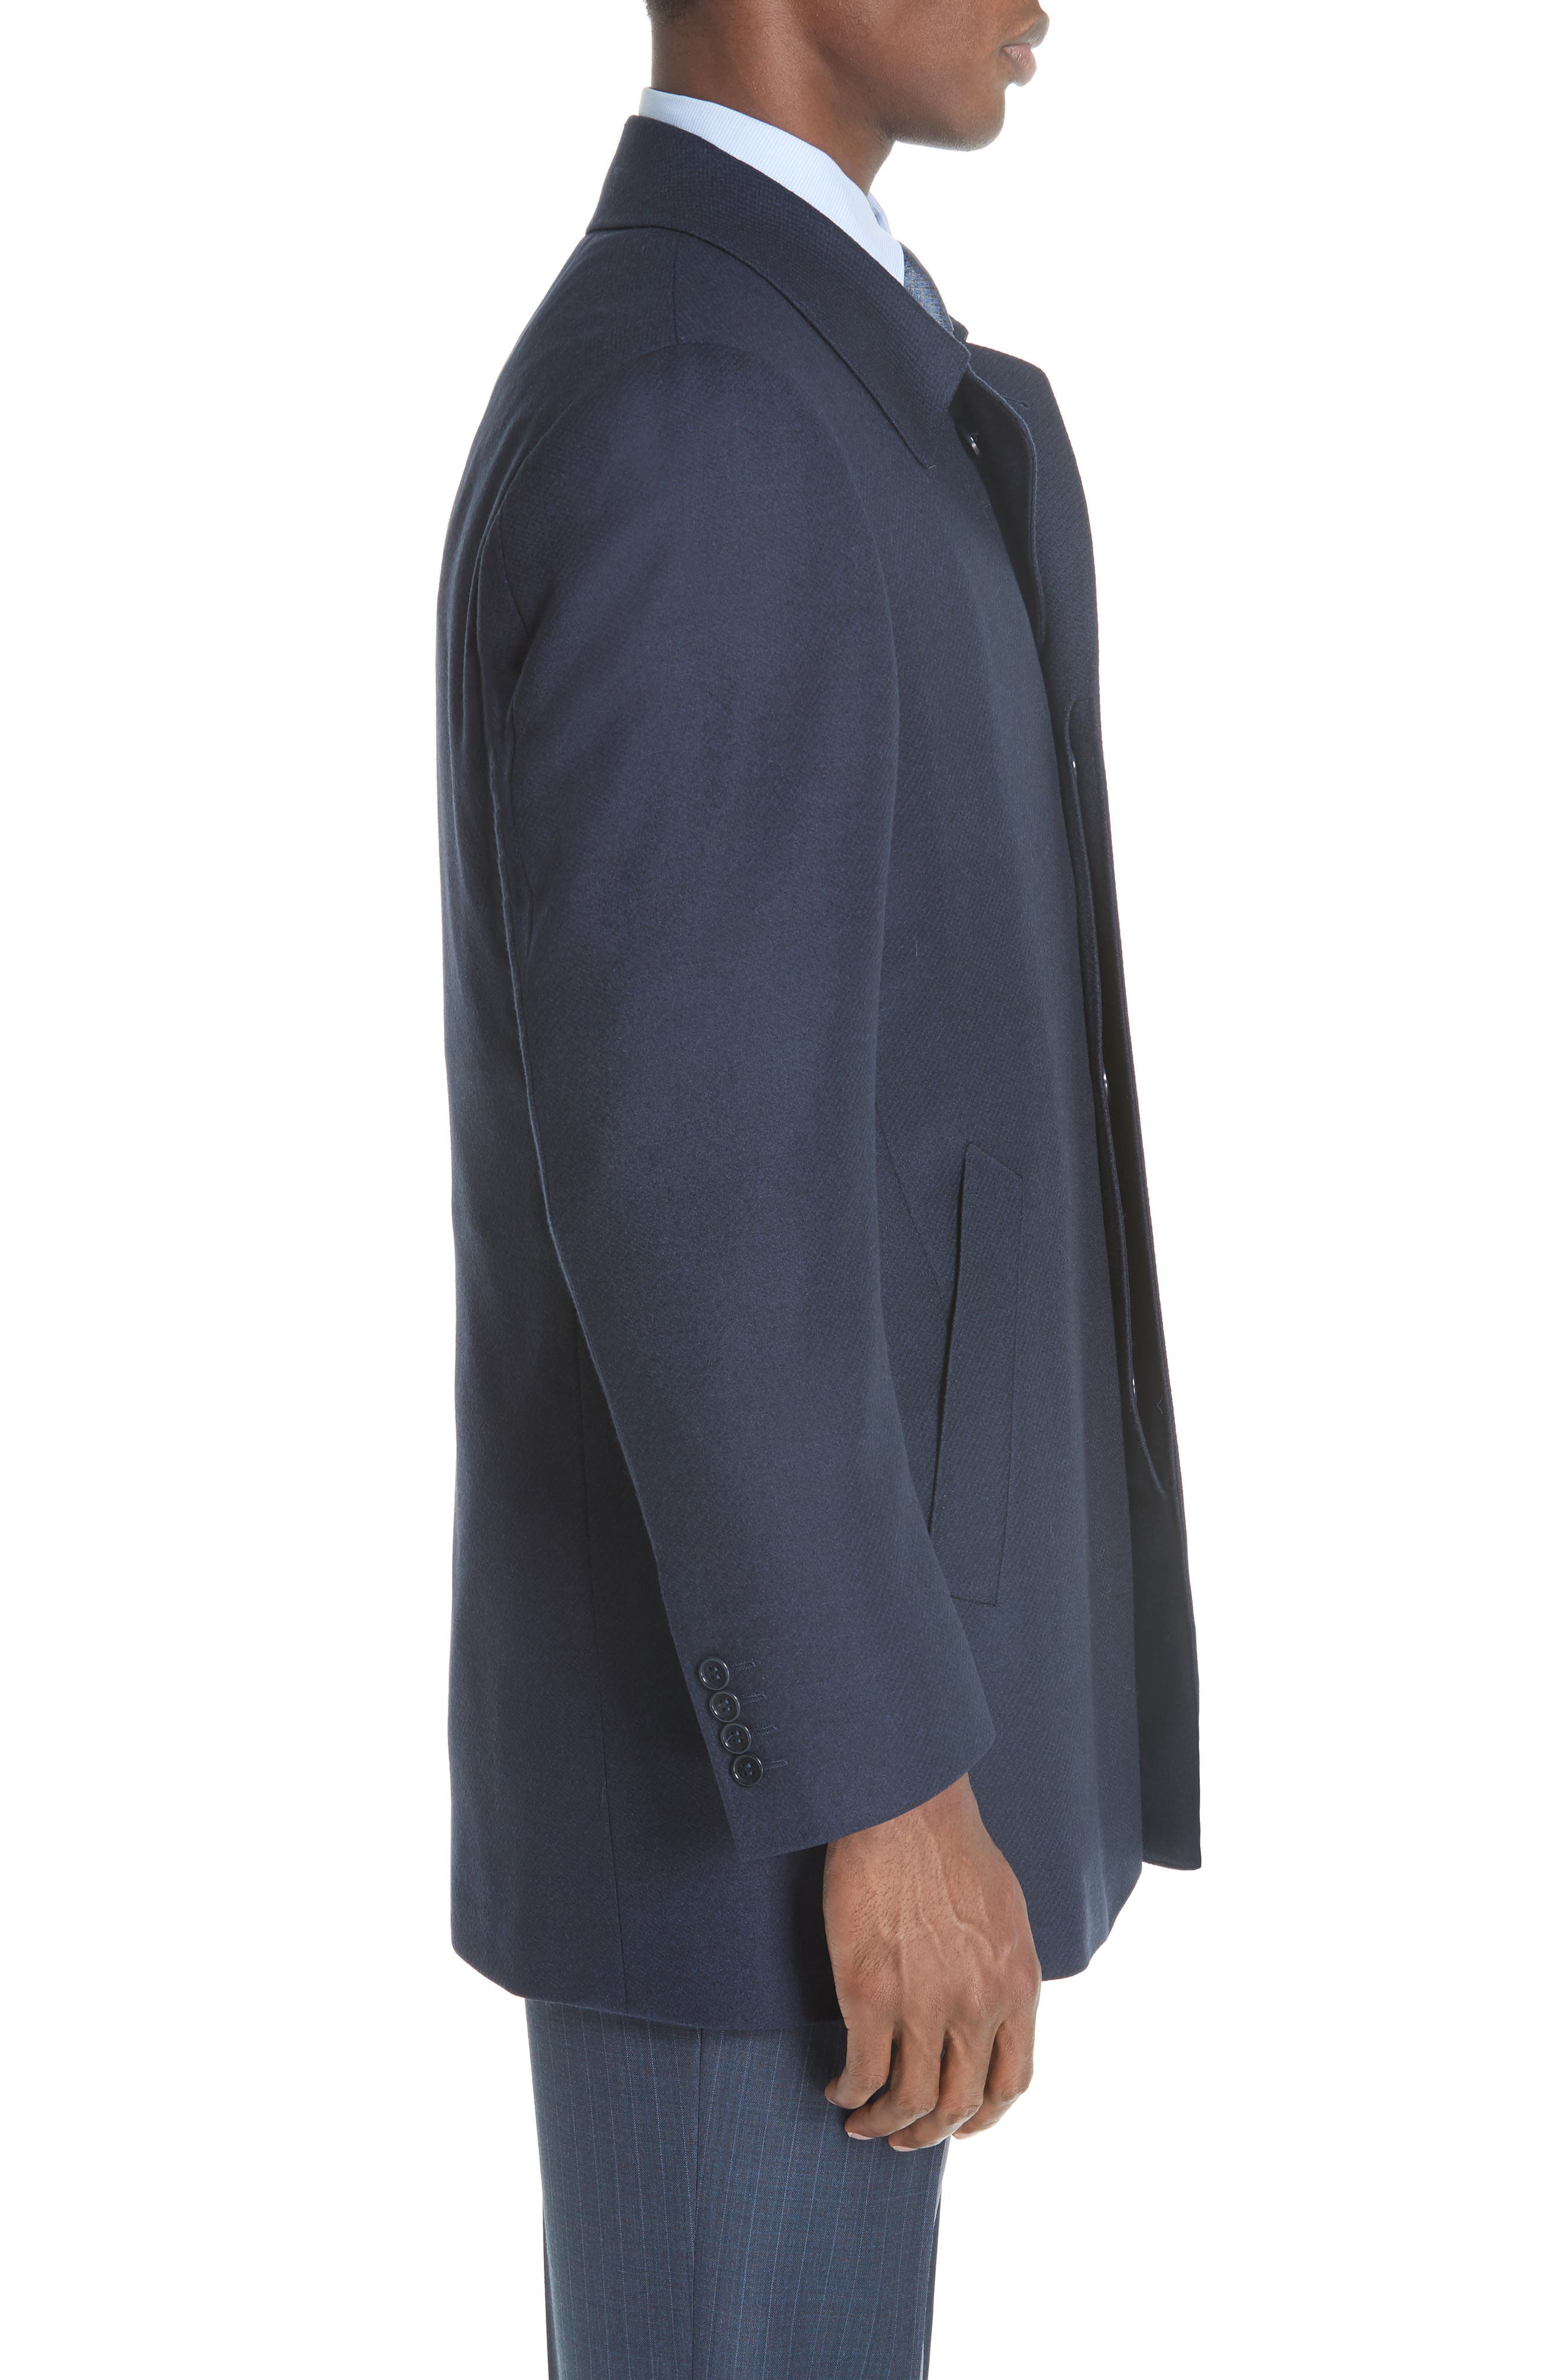 Impeccabile Wool Car Coat,                             Alternate thumbnail 3, color,                             NAVY